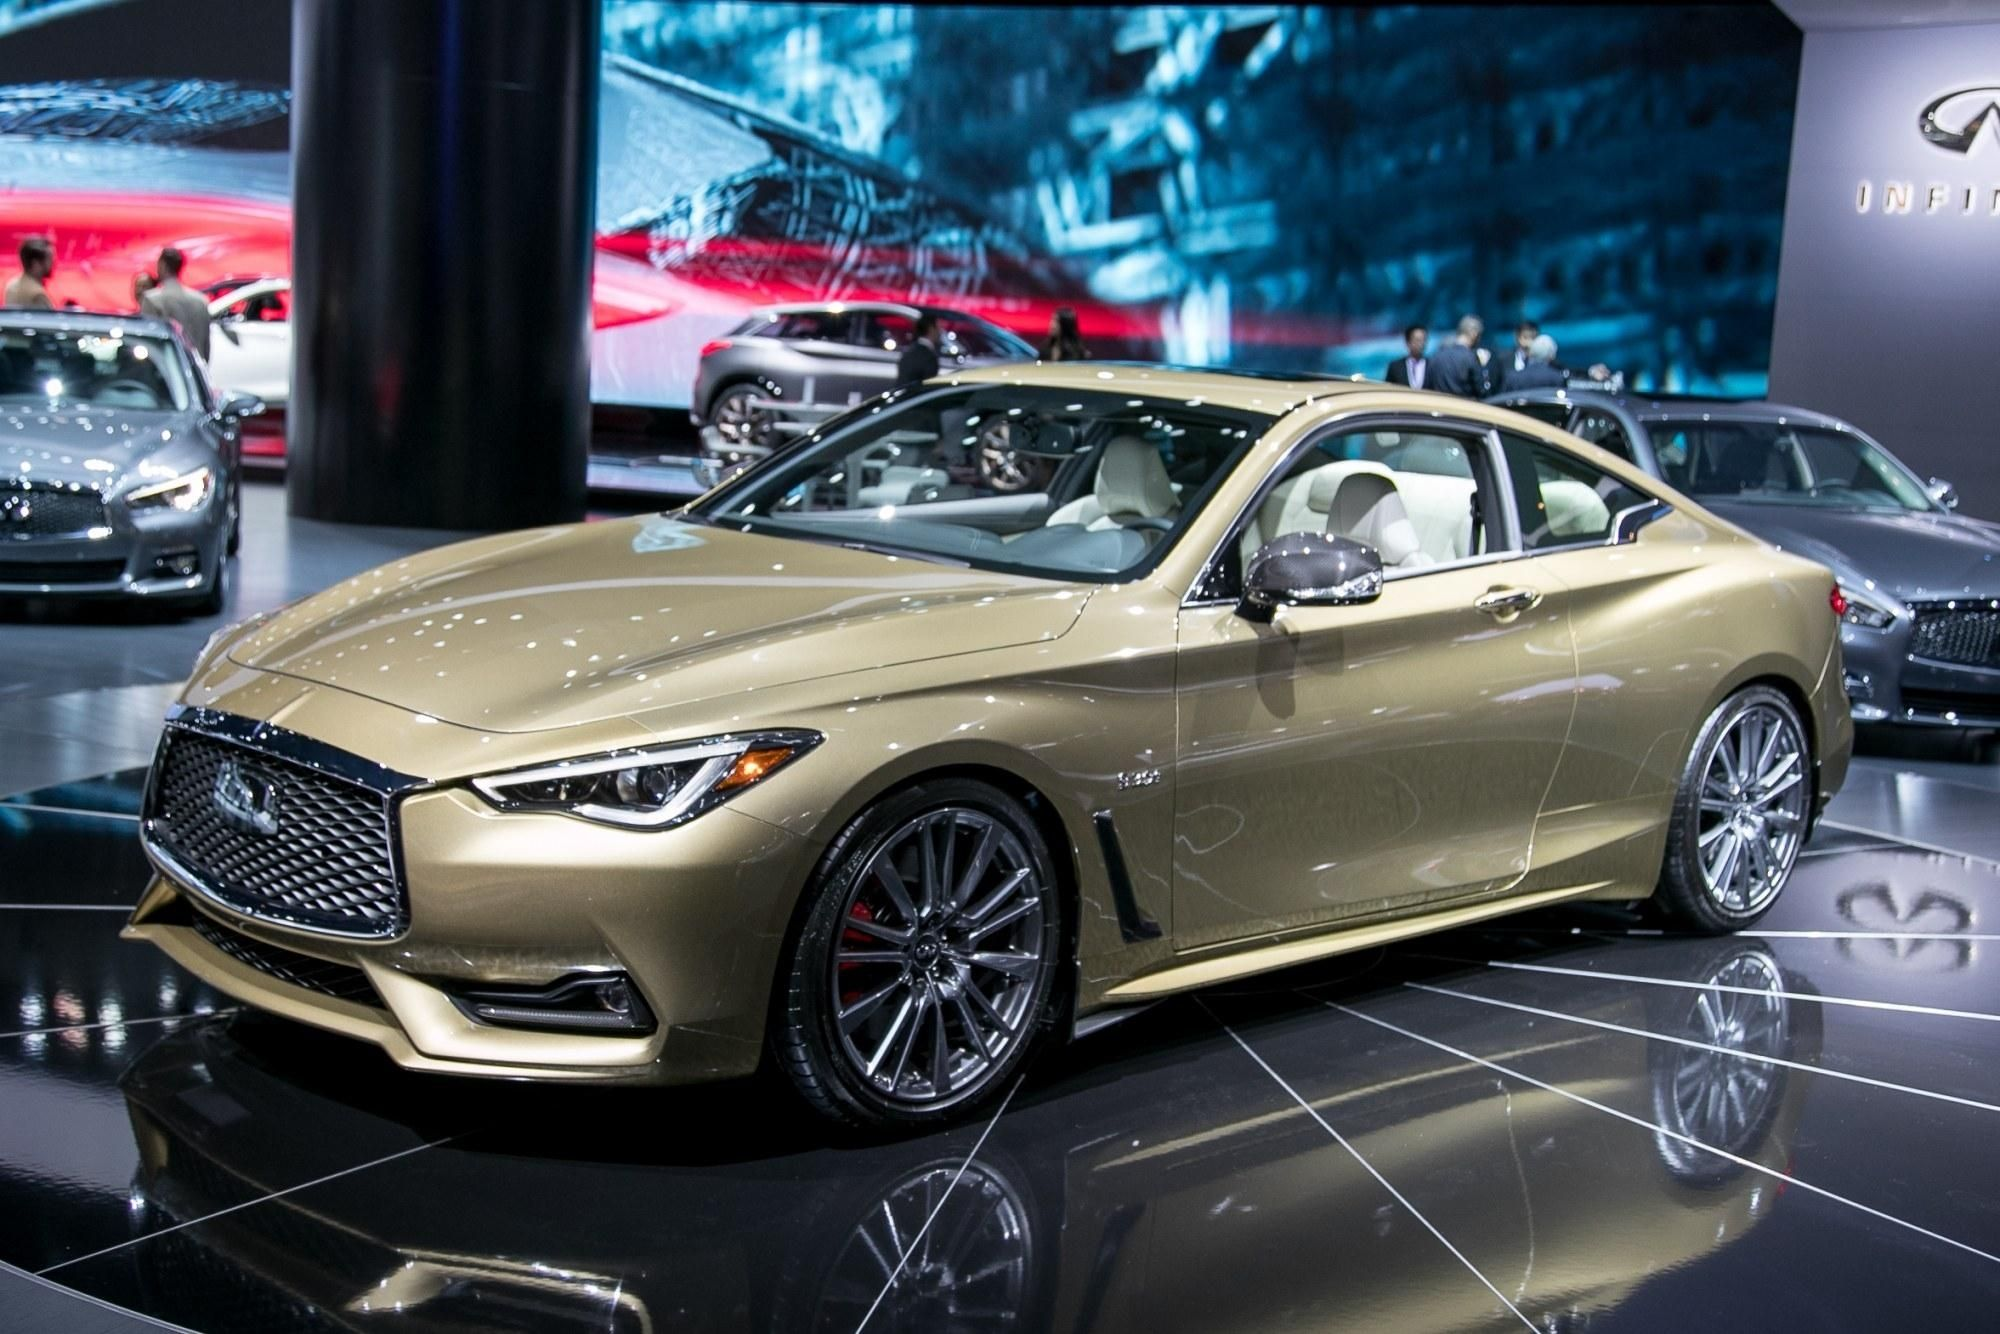 2019 Infiniti Q60 Exterior Car Review 2018 Within Q60s And Interior